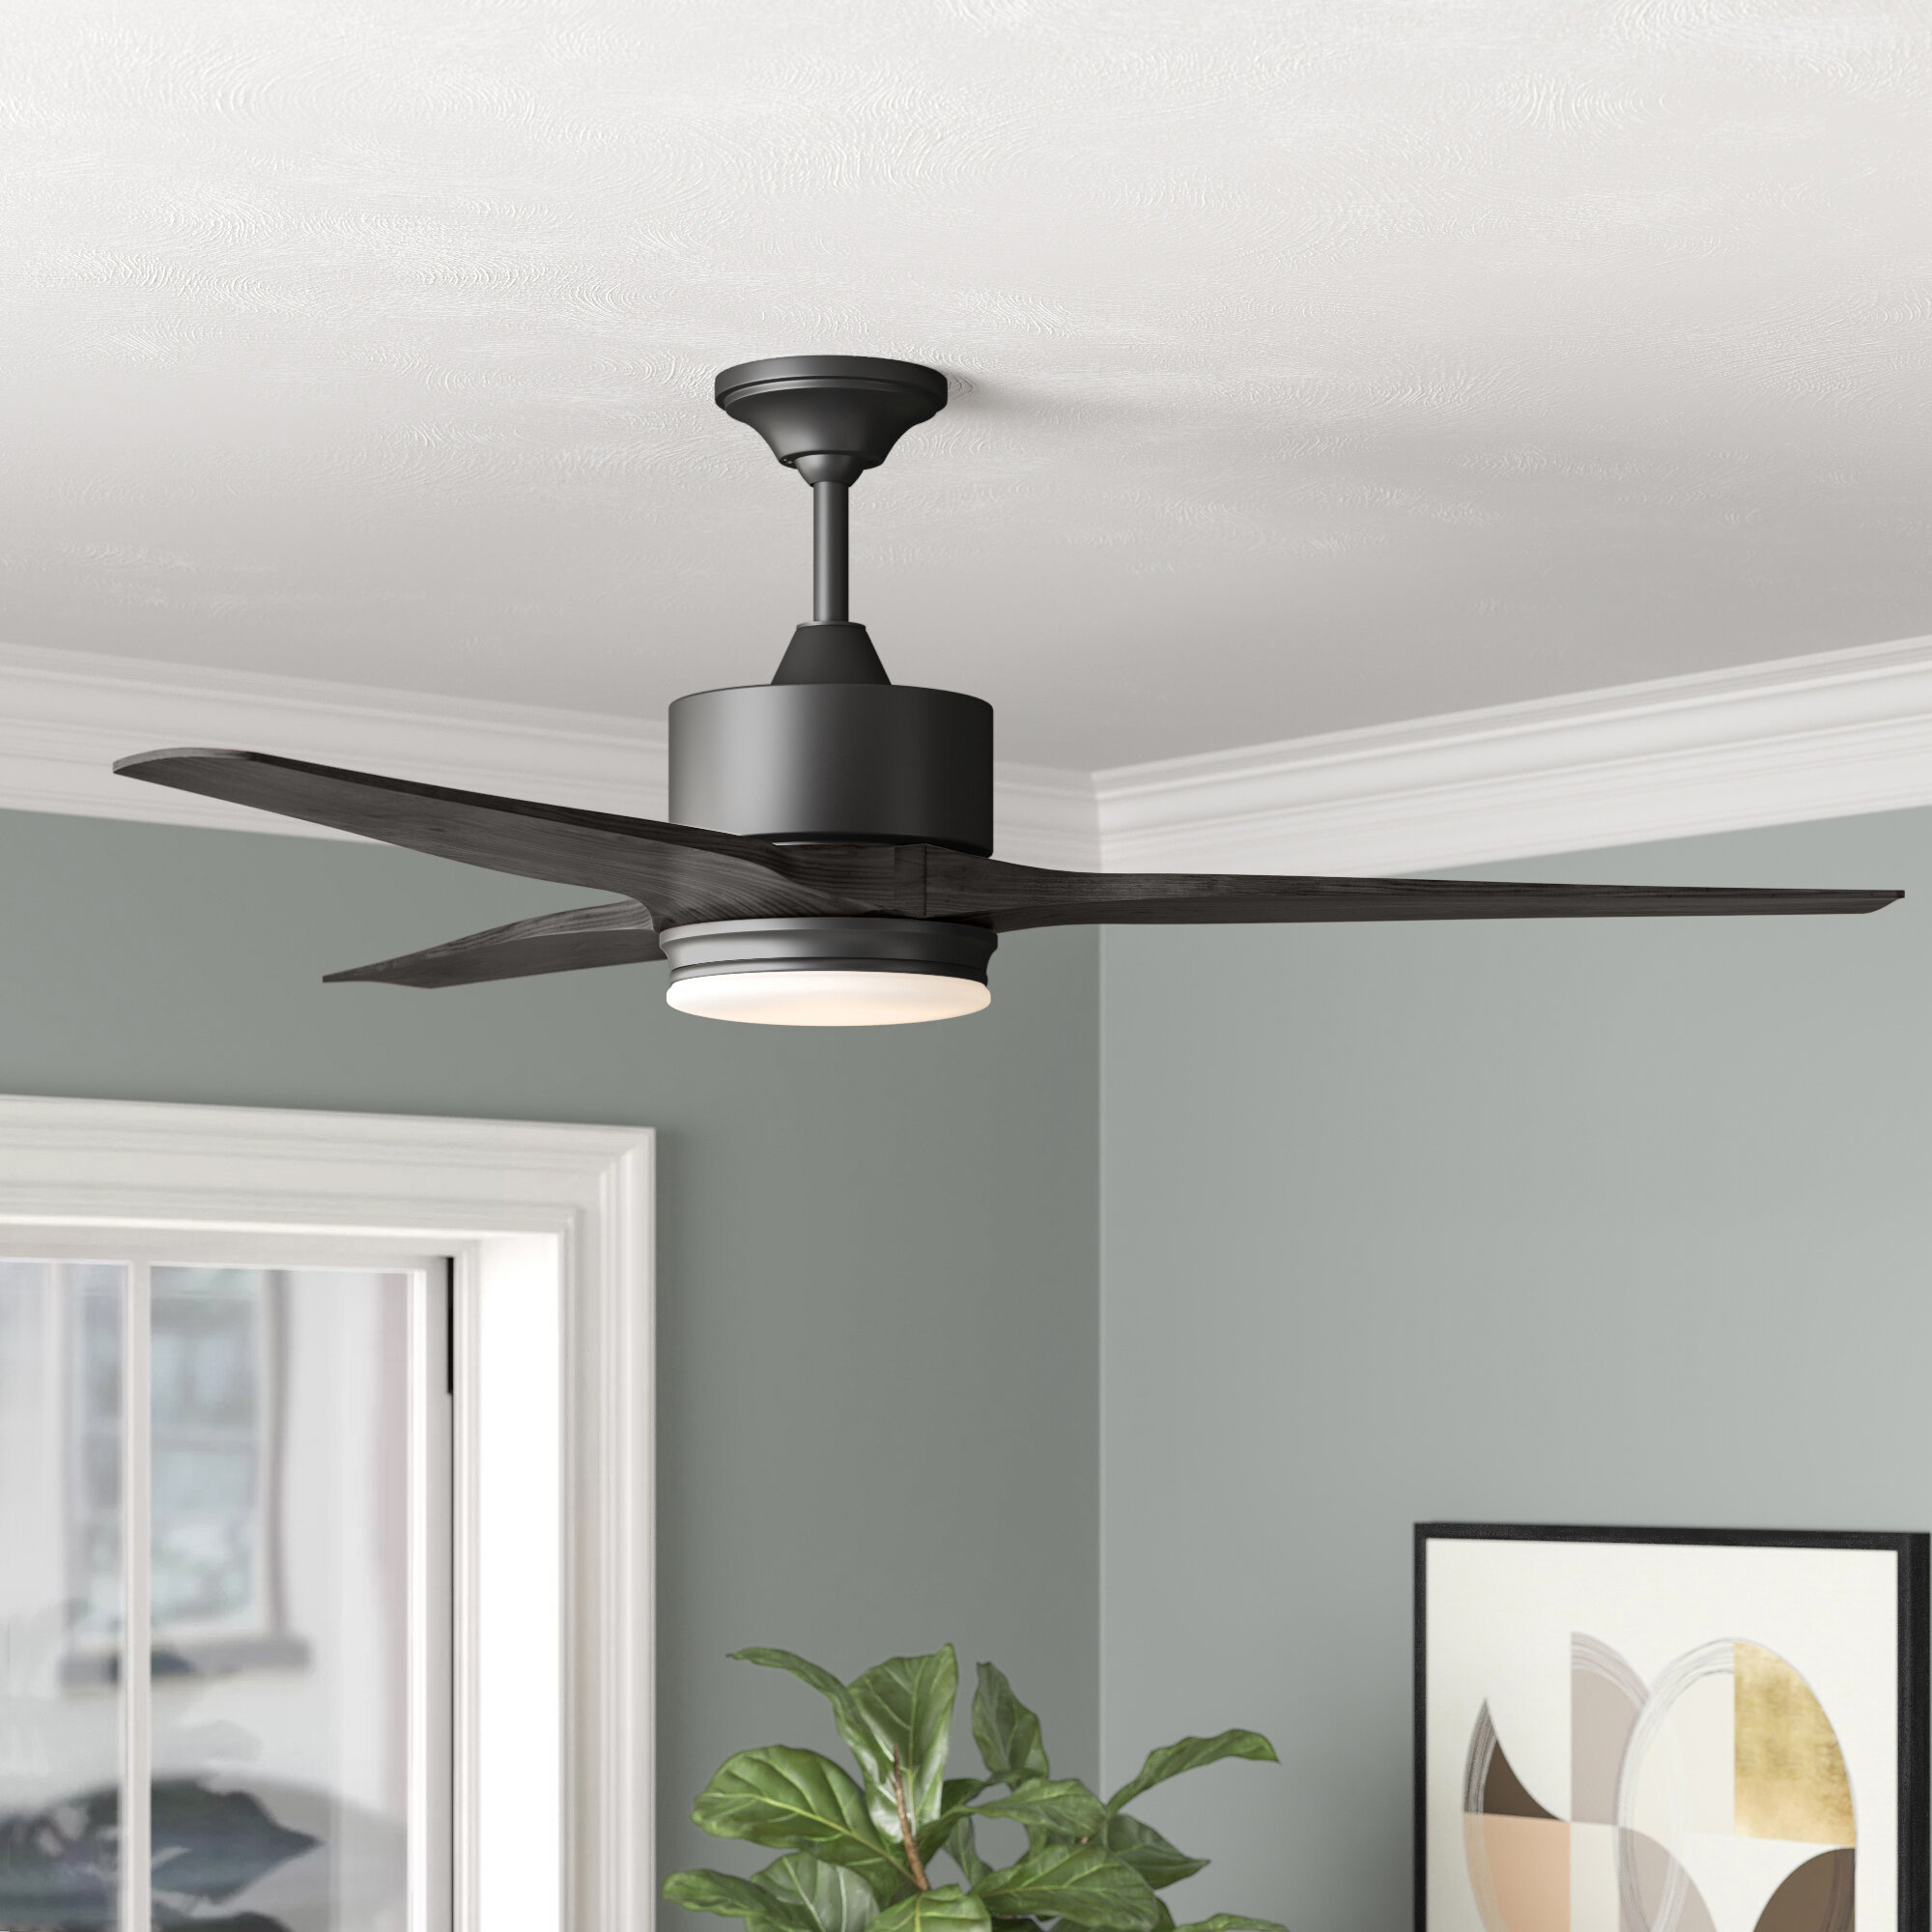 Ceiling Fans With Lights You Ll Love In 2020 Wayfair,Barbra Streisand Home